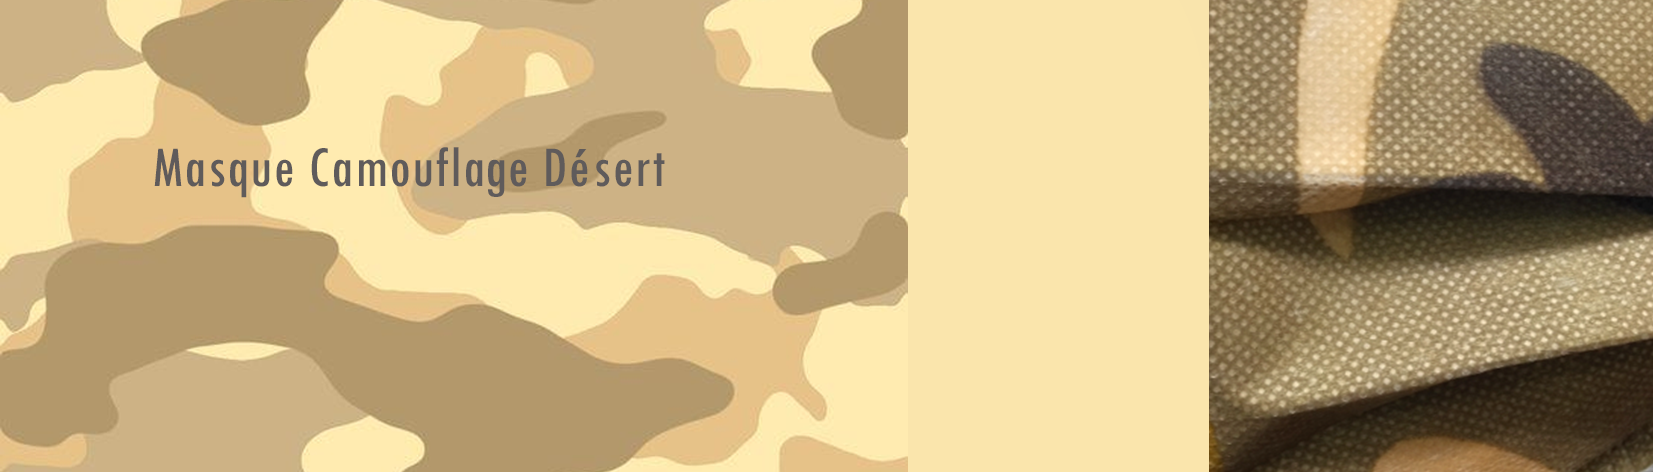 Masque couleur camouflage 2.png